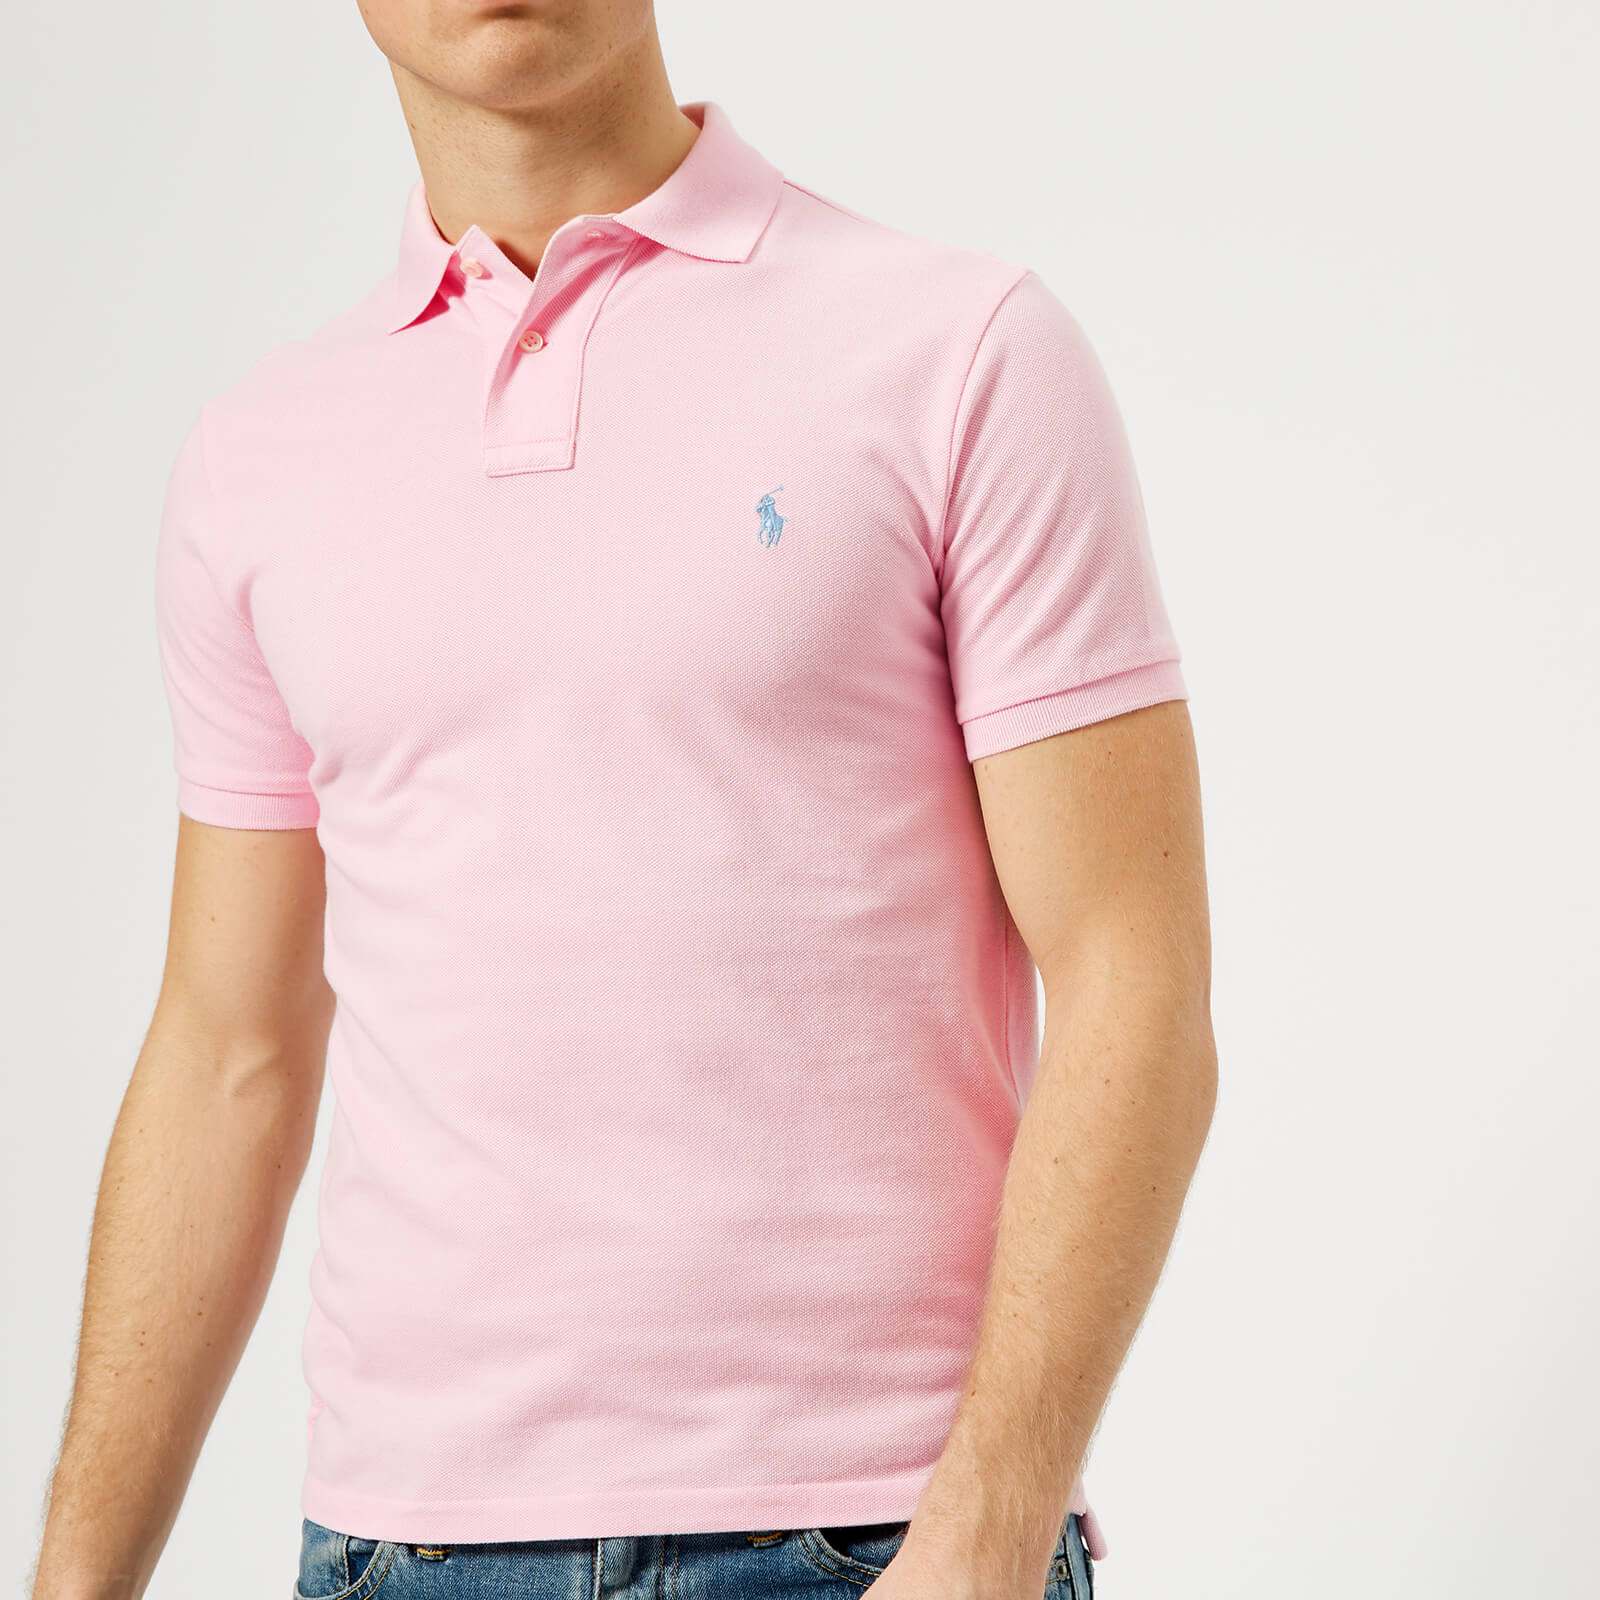 6326d781b Polo Ralph Lauren Men's Slim Fit Polo Shirt - Pink - Free UK Delivery over  £50